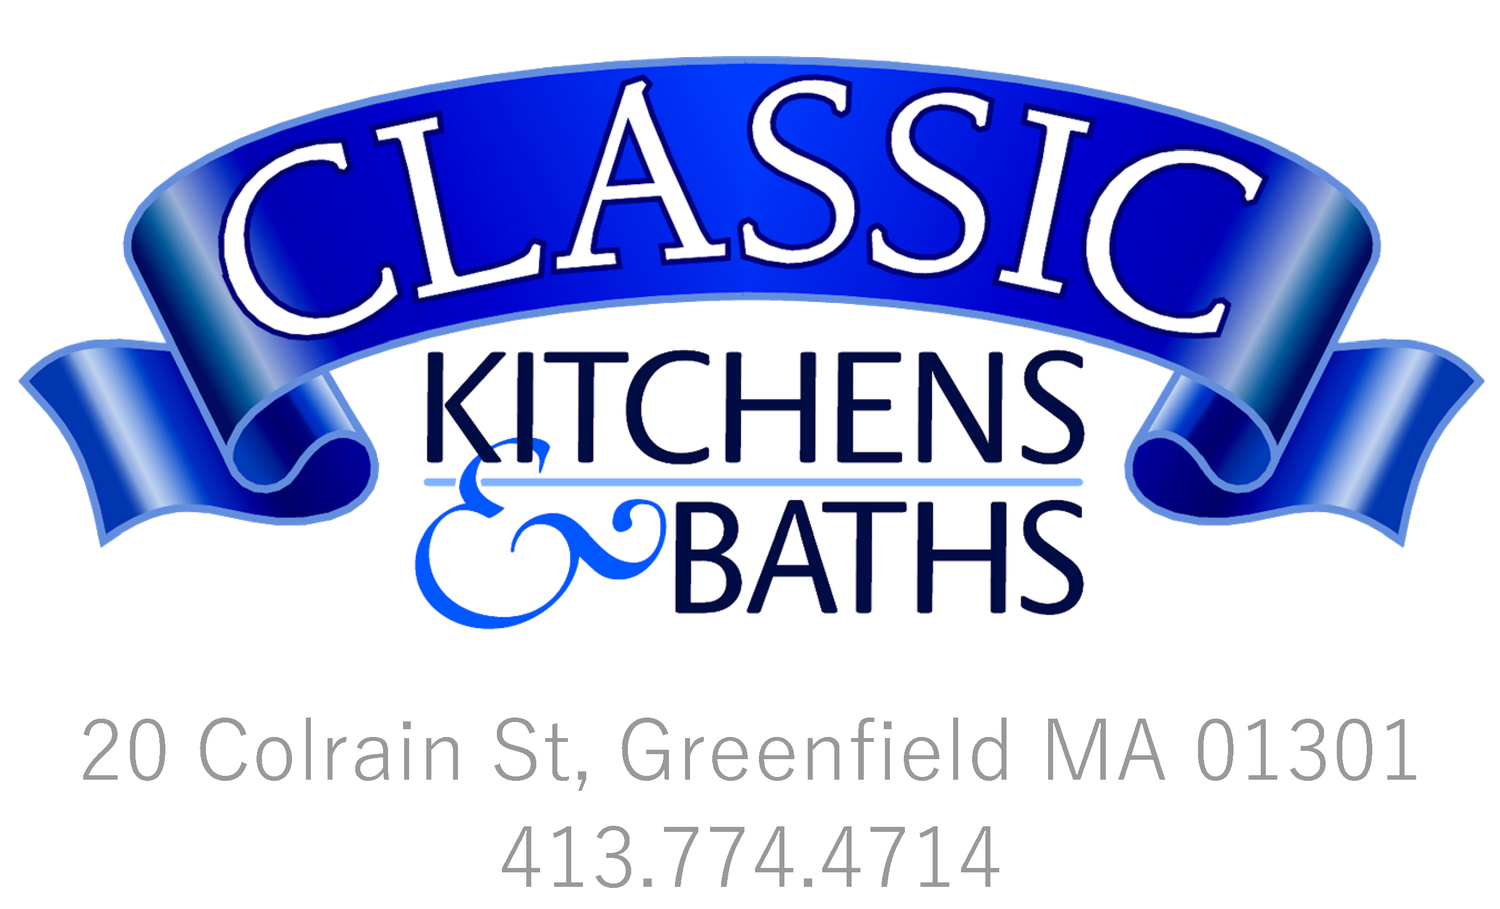 Classic Kitchens & Baths